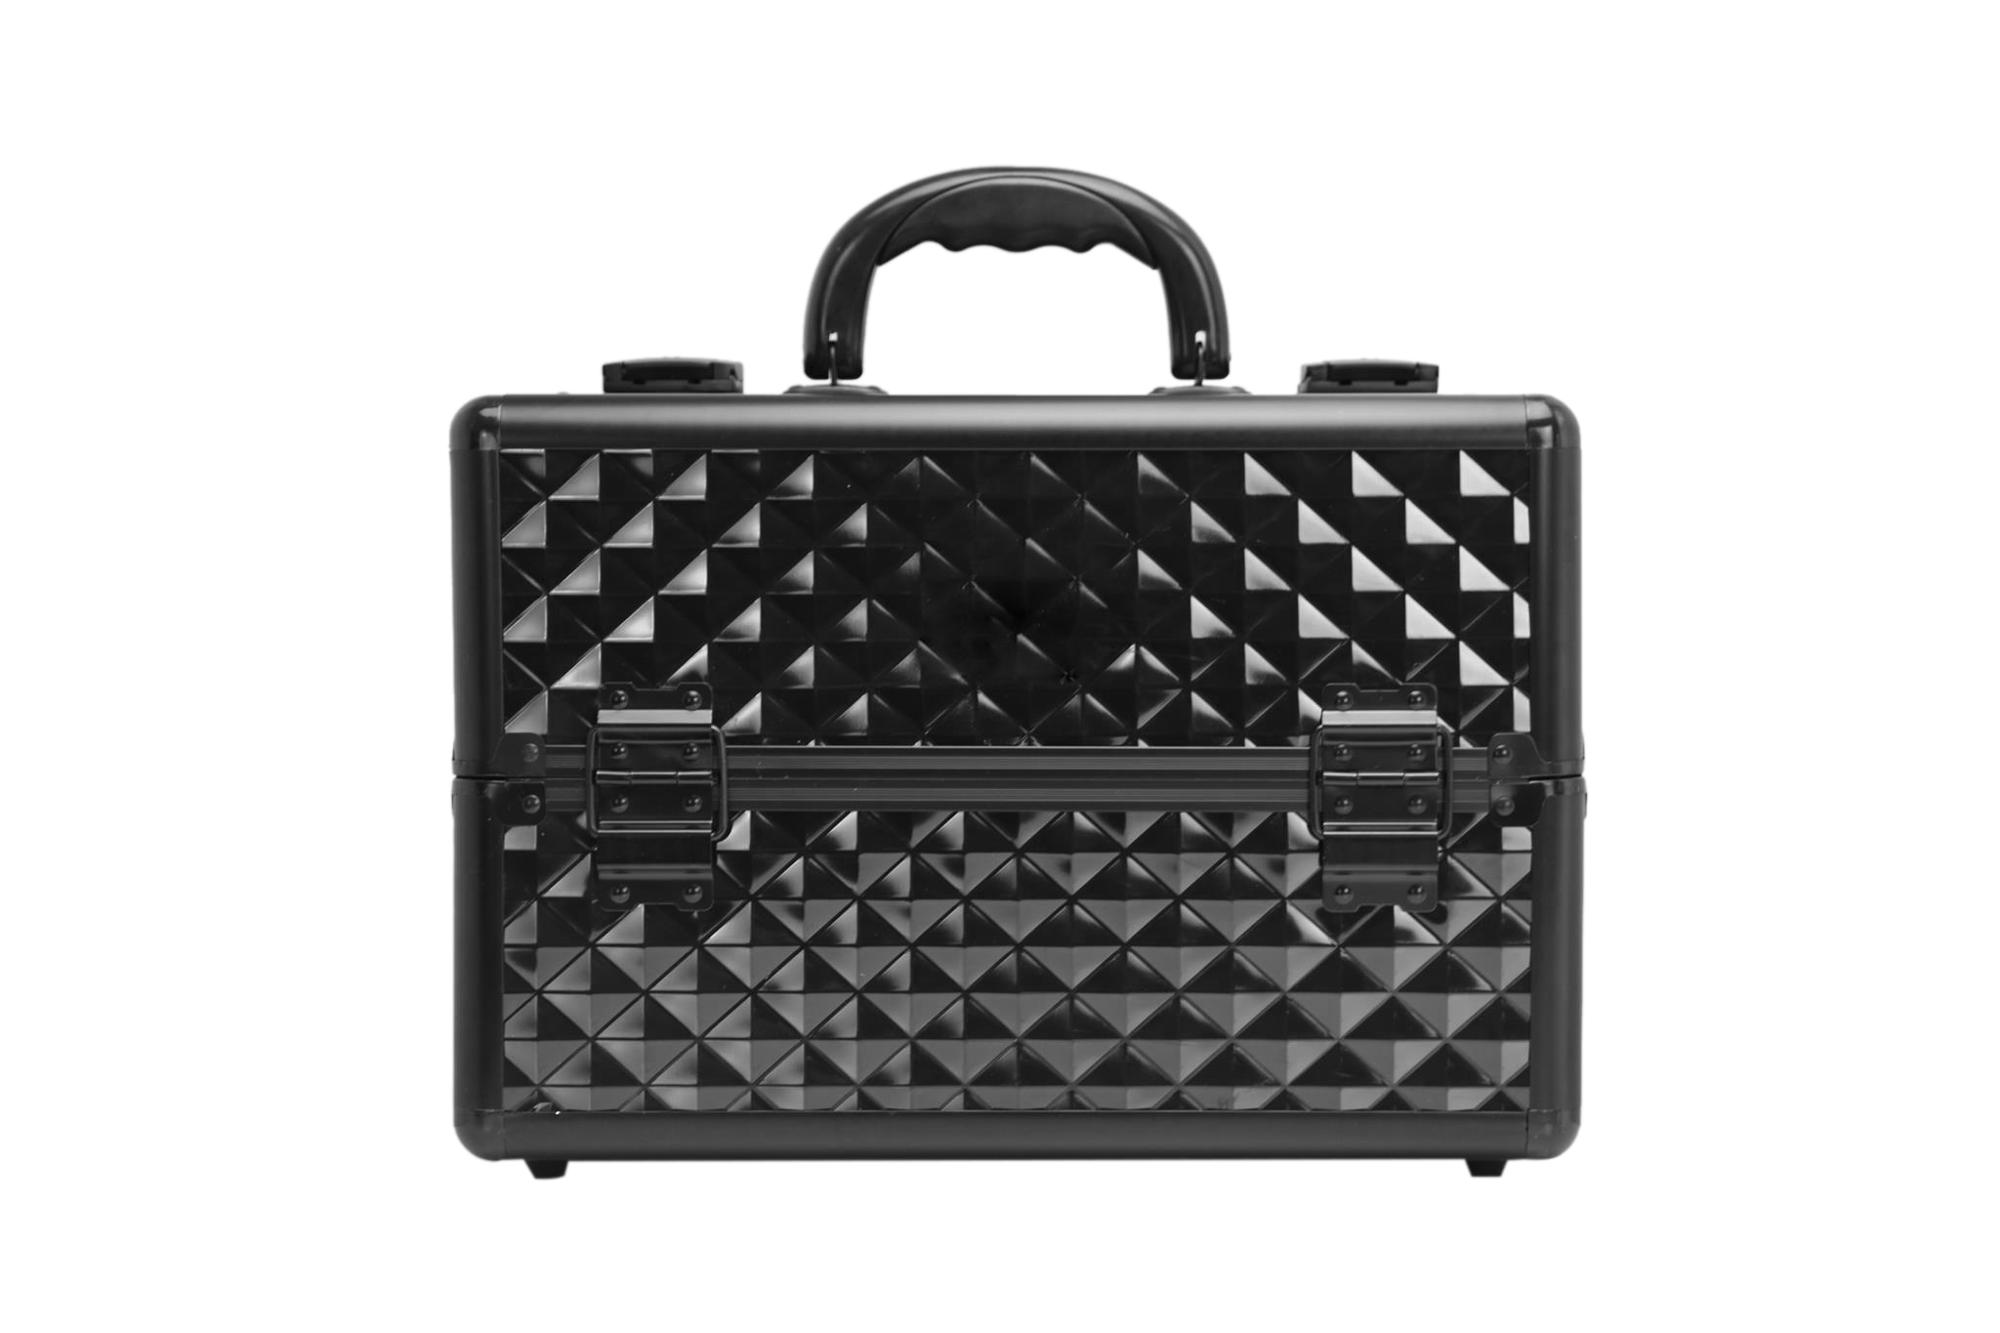 Black PVC leather panel Cosmetics Case Makeup Suitcase